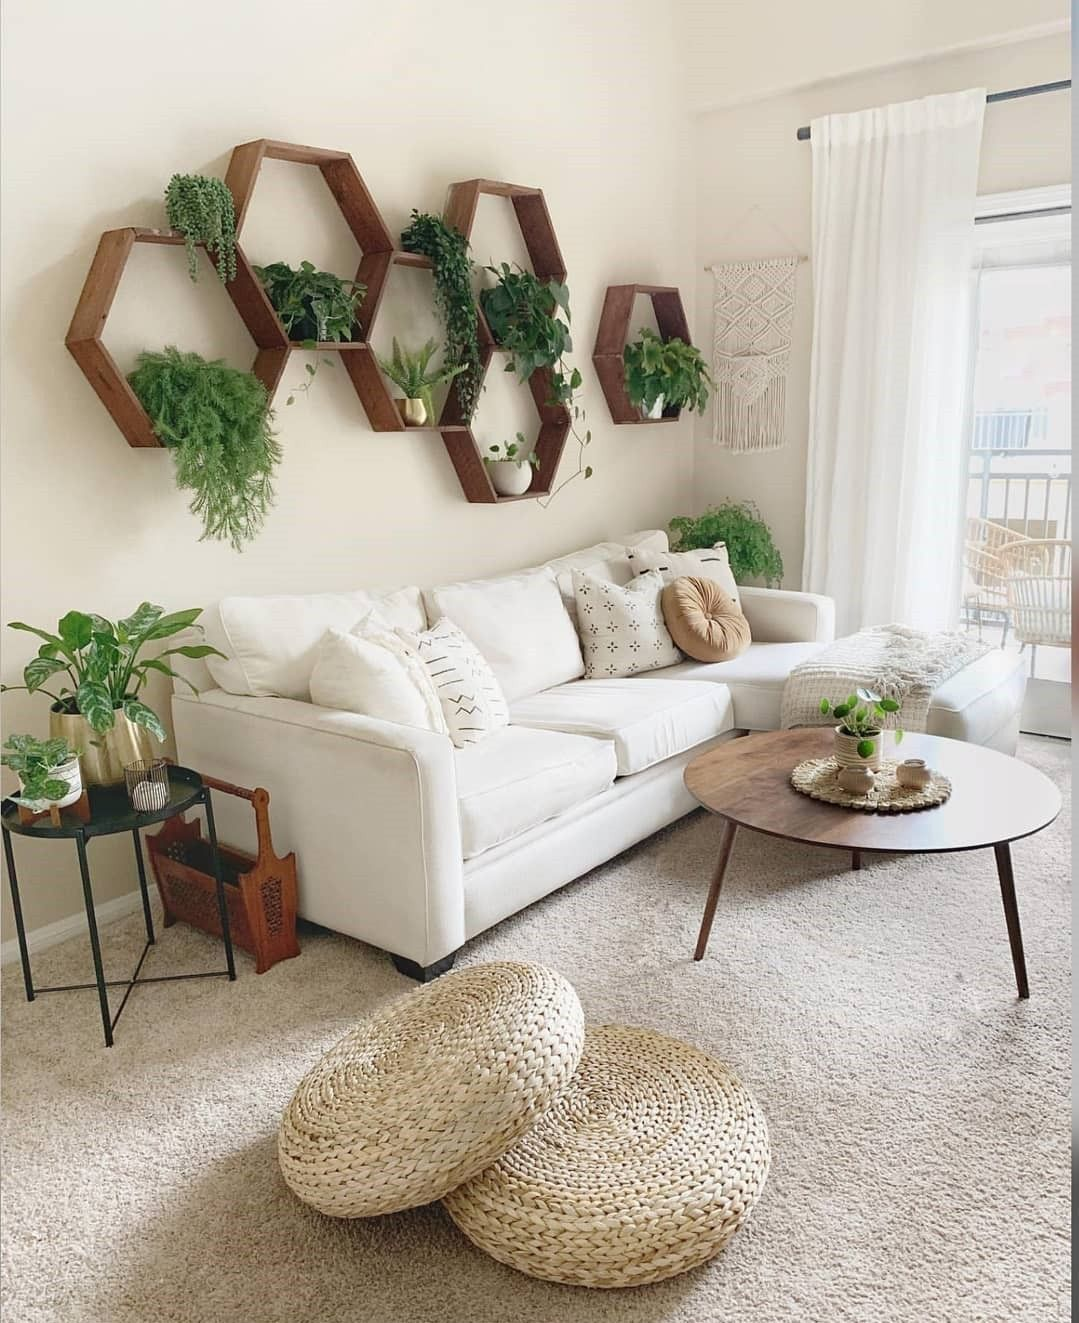 Top Trend Wall Decor Living Room Ideas Guide @house2homegoods.net